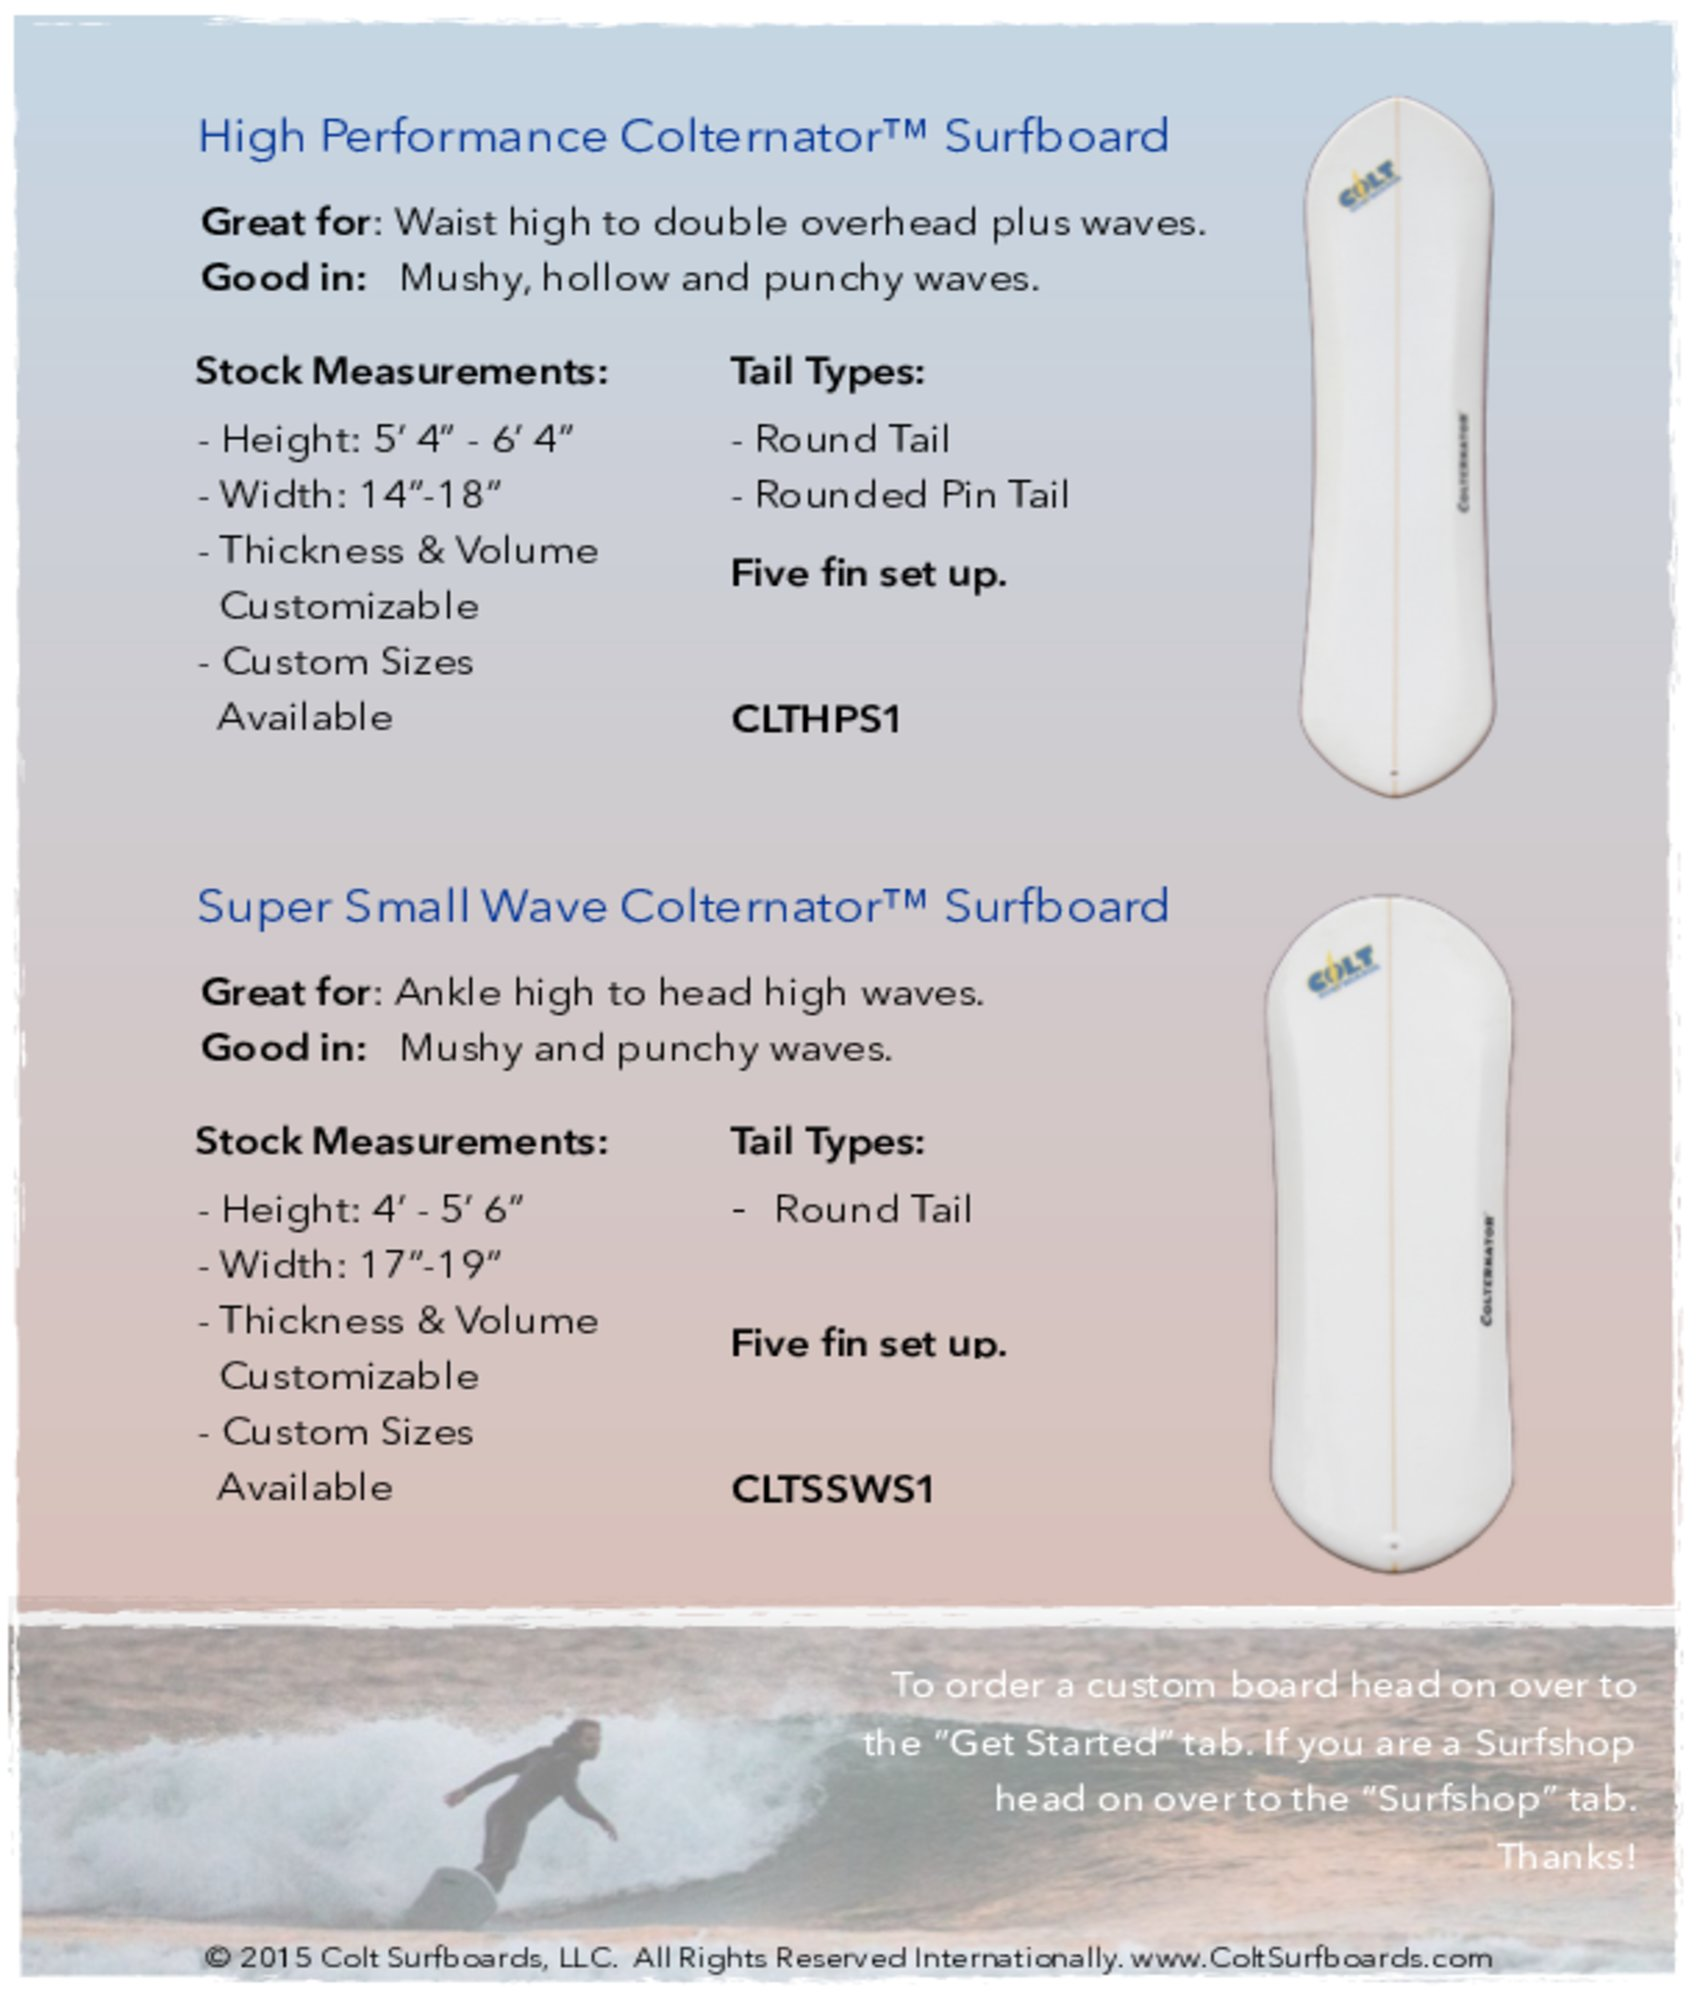 High Performance Colternator™ and Super Small Wave Colternator™ Surfboards surboards tab © 2015 Colt Surfboards LLC All rights reserved internationally 2